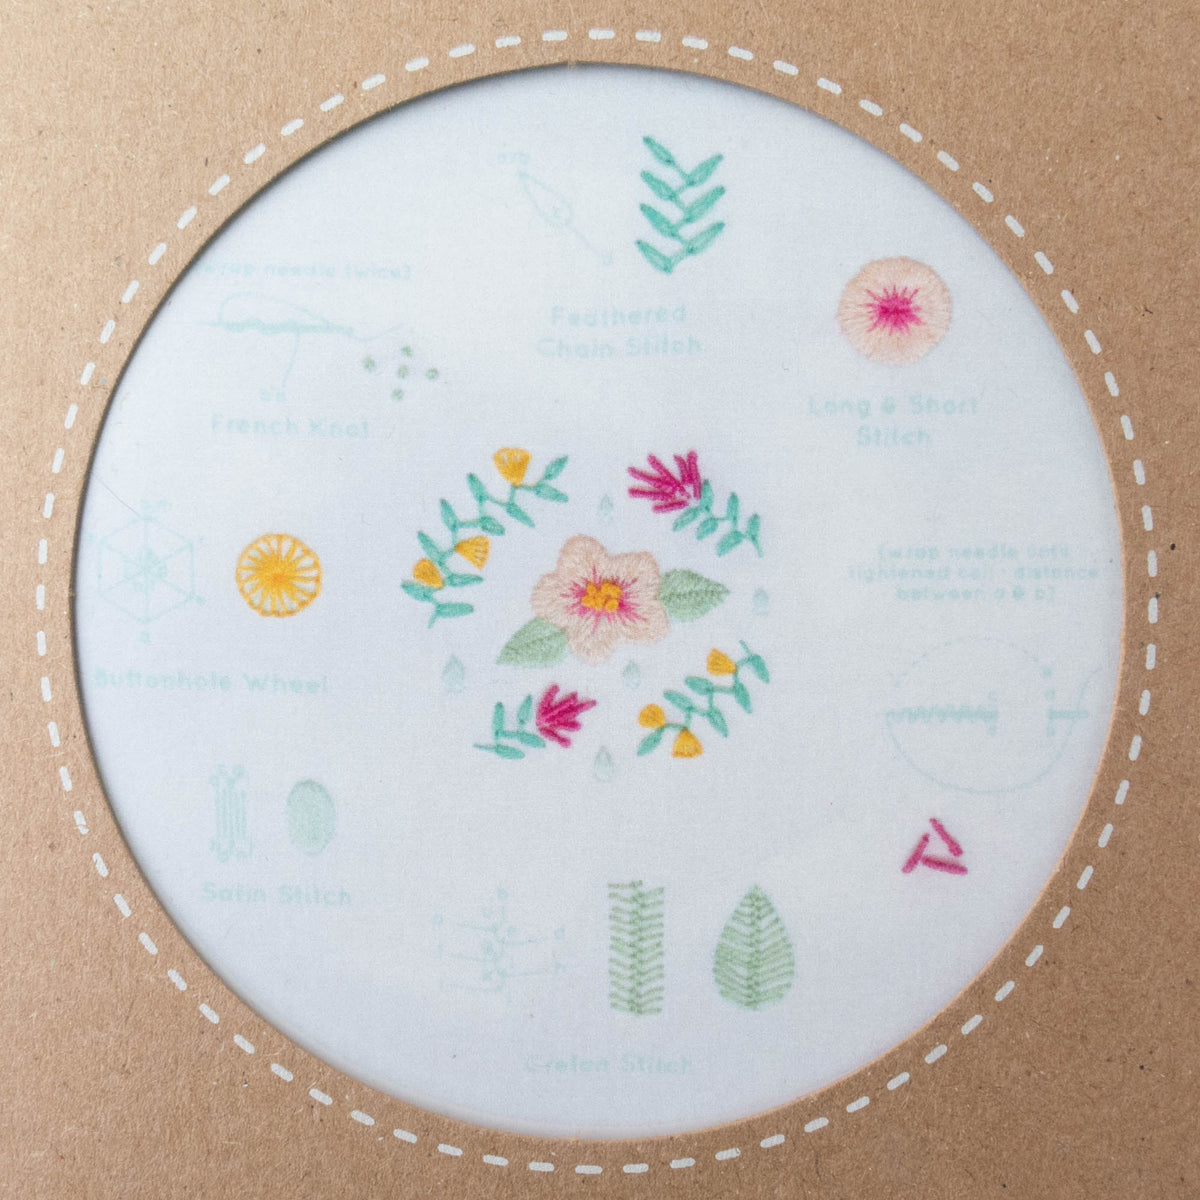 Kiriki Press Embroidery Stitch Sampler - Spring Embroidery Kit - Snuggly Monkey